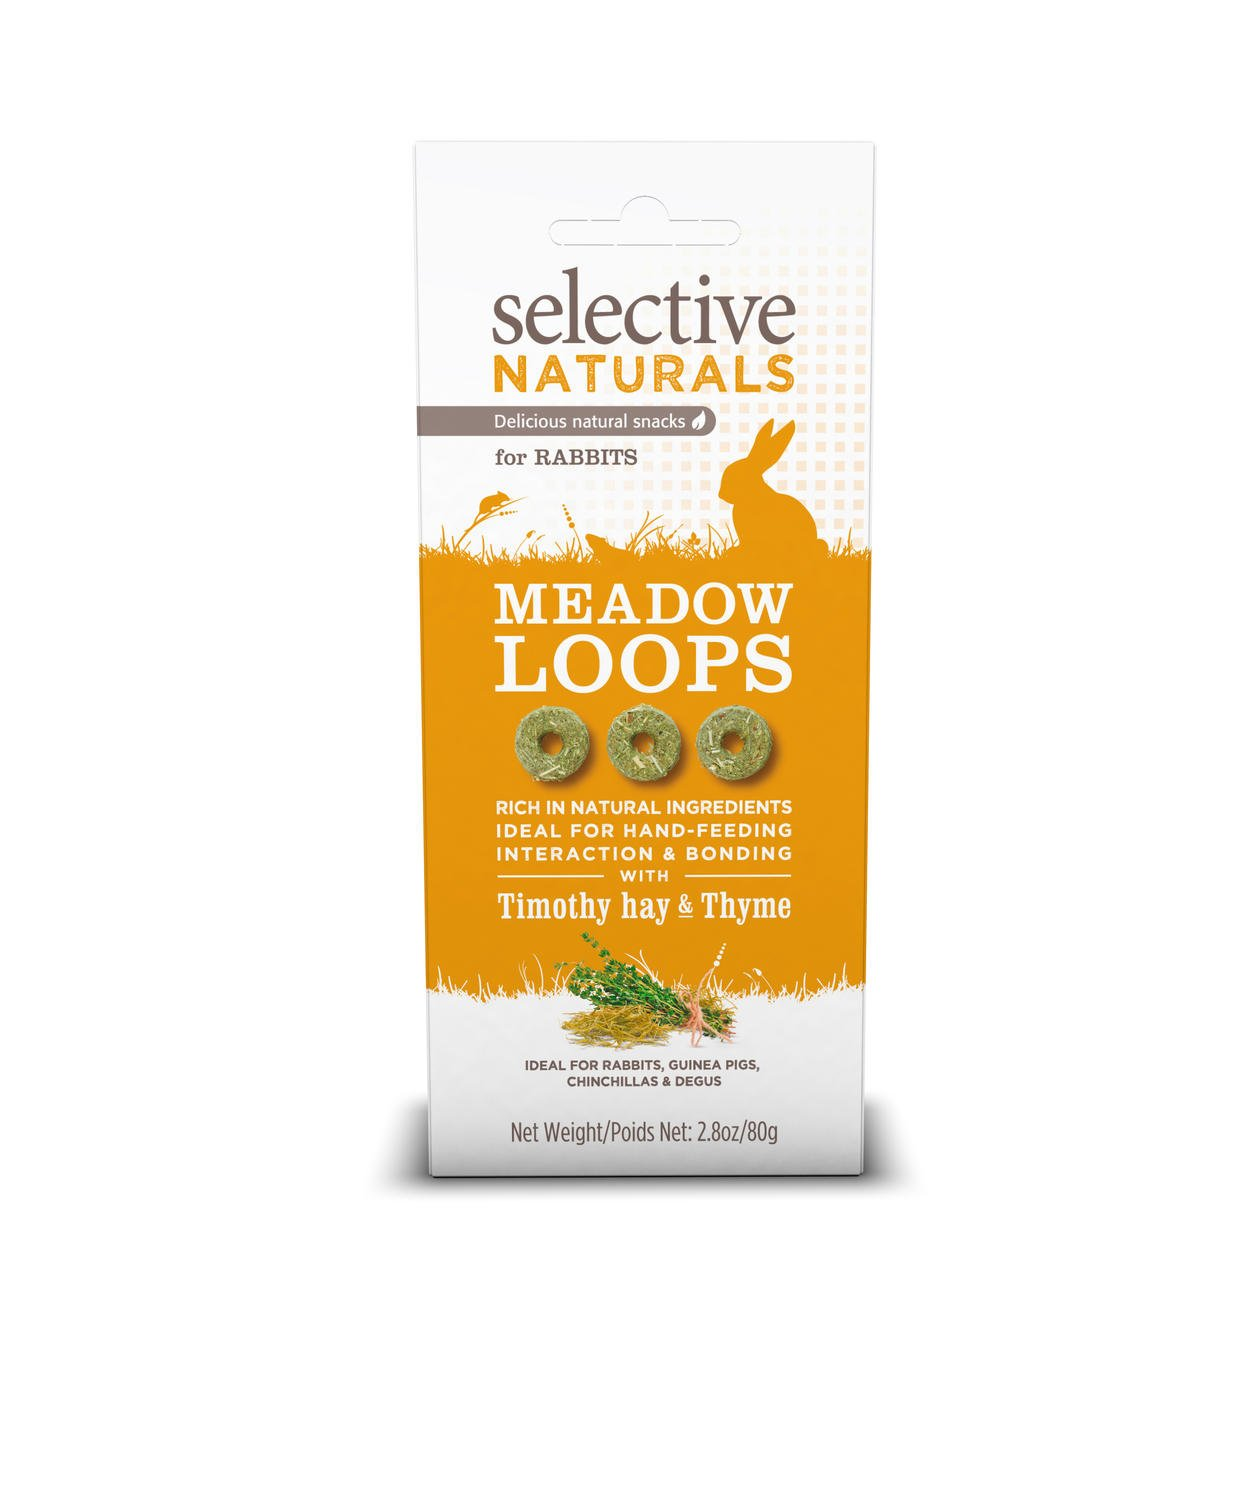 Supreme Petfoods Selective Naturals Meadow Loops for Rabbits with Timothy Hay and Thyme